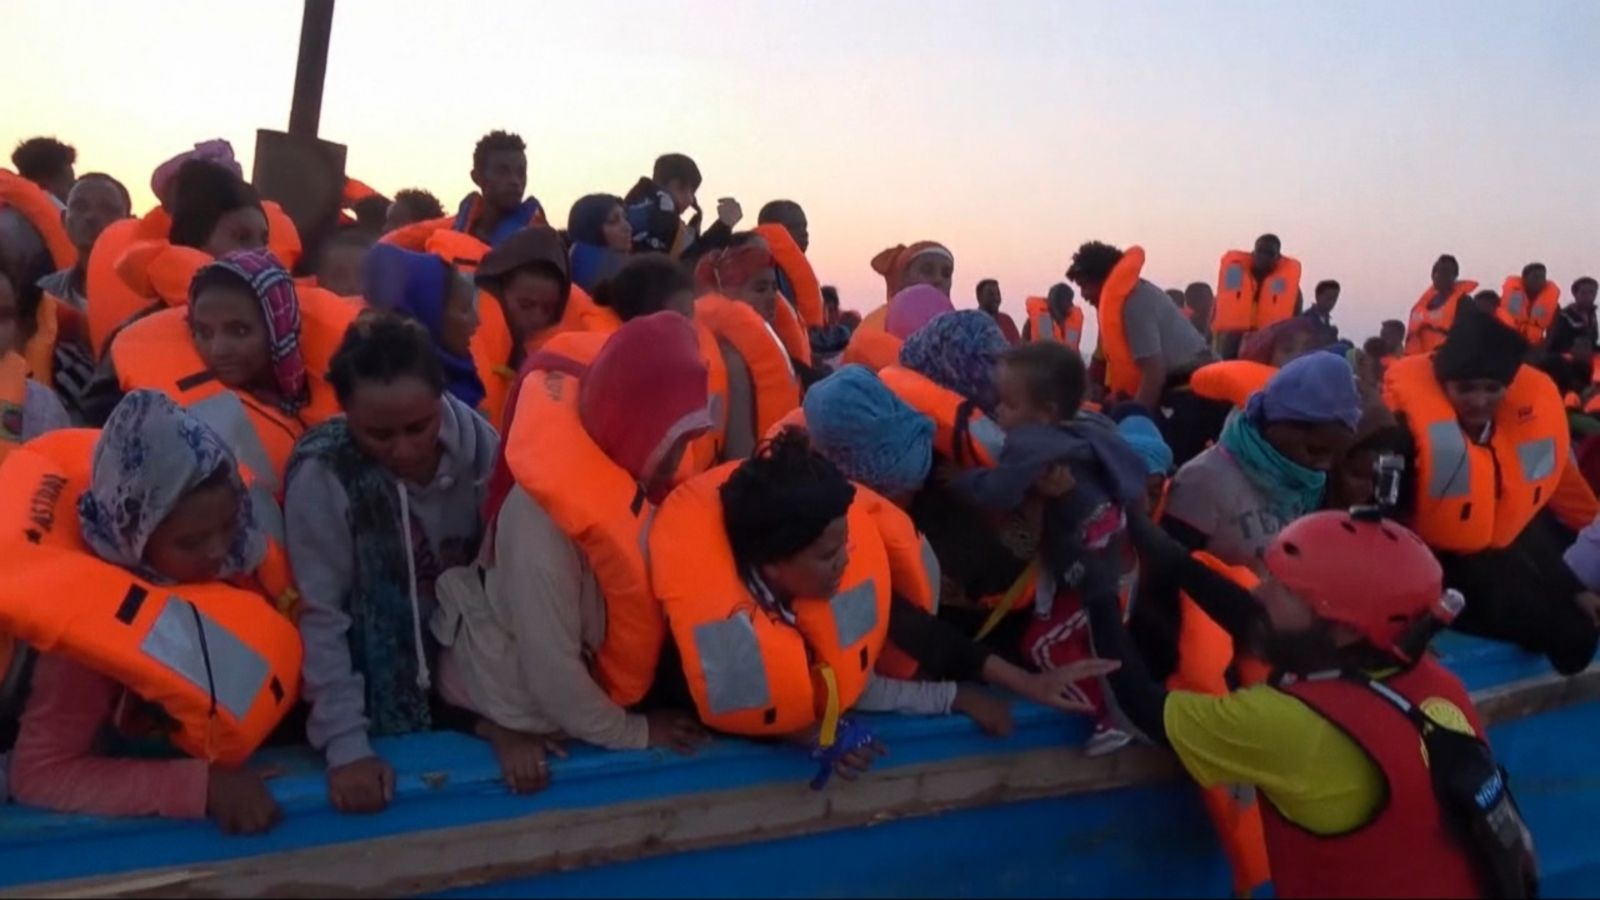 Thousands of refugees trying to reach Europe were rescued off the coast of Libya on Monday morning after their overcrowded wooden boats sent people falling into the Mediterranean Sea.